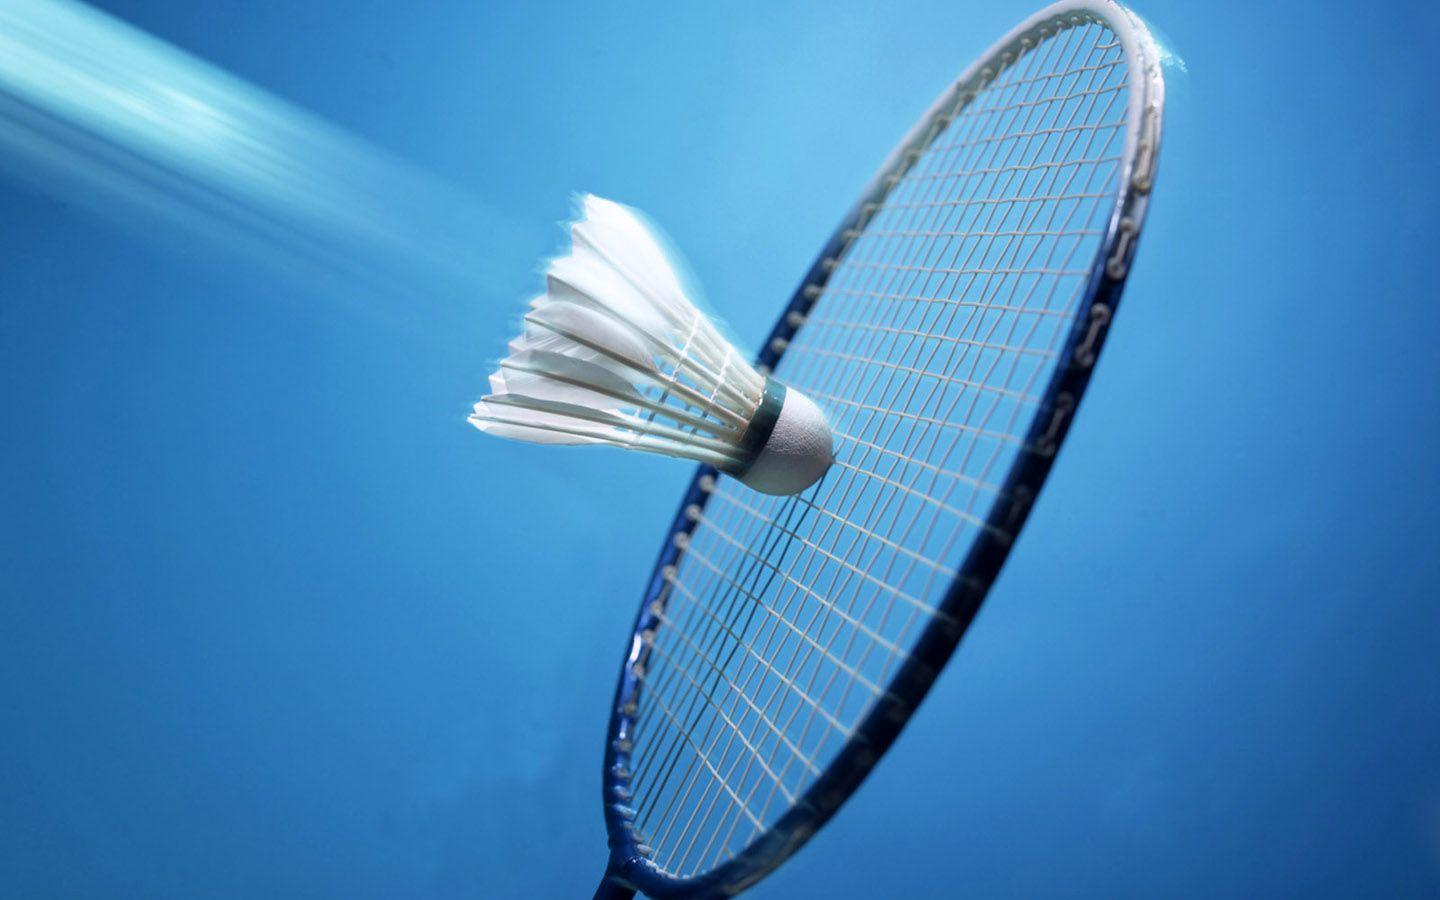 HD Badminton Wallpapers | Download Free - 974749